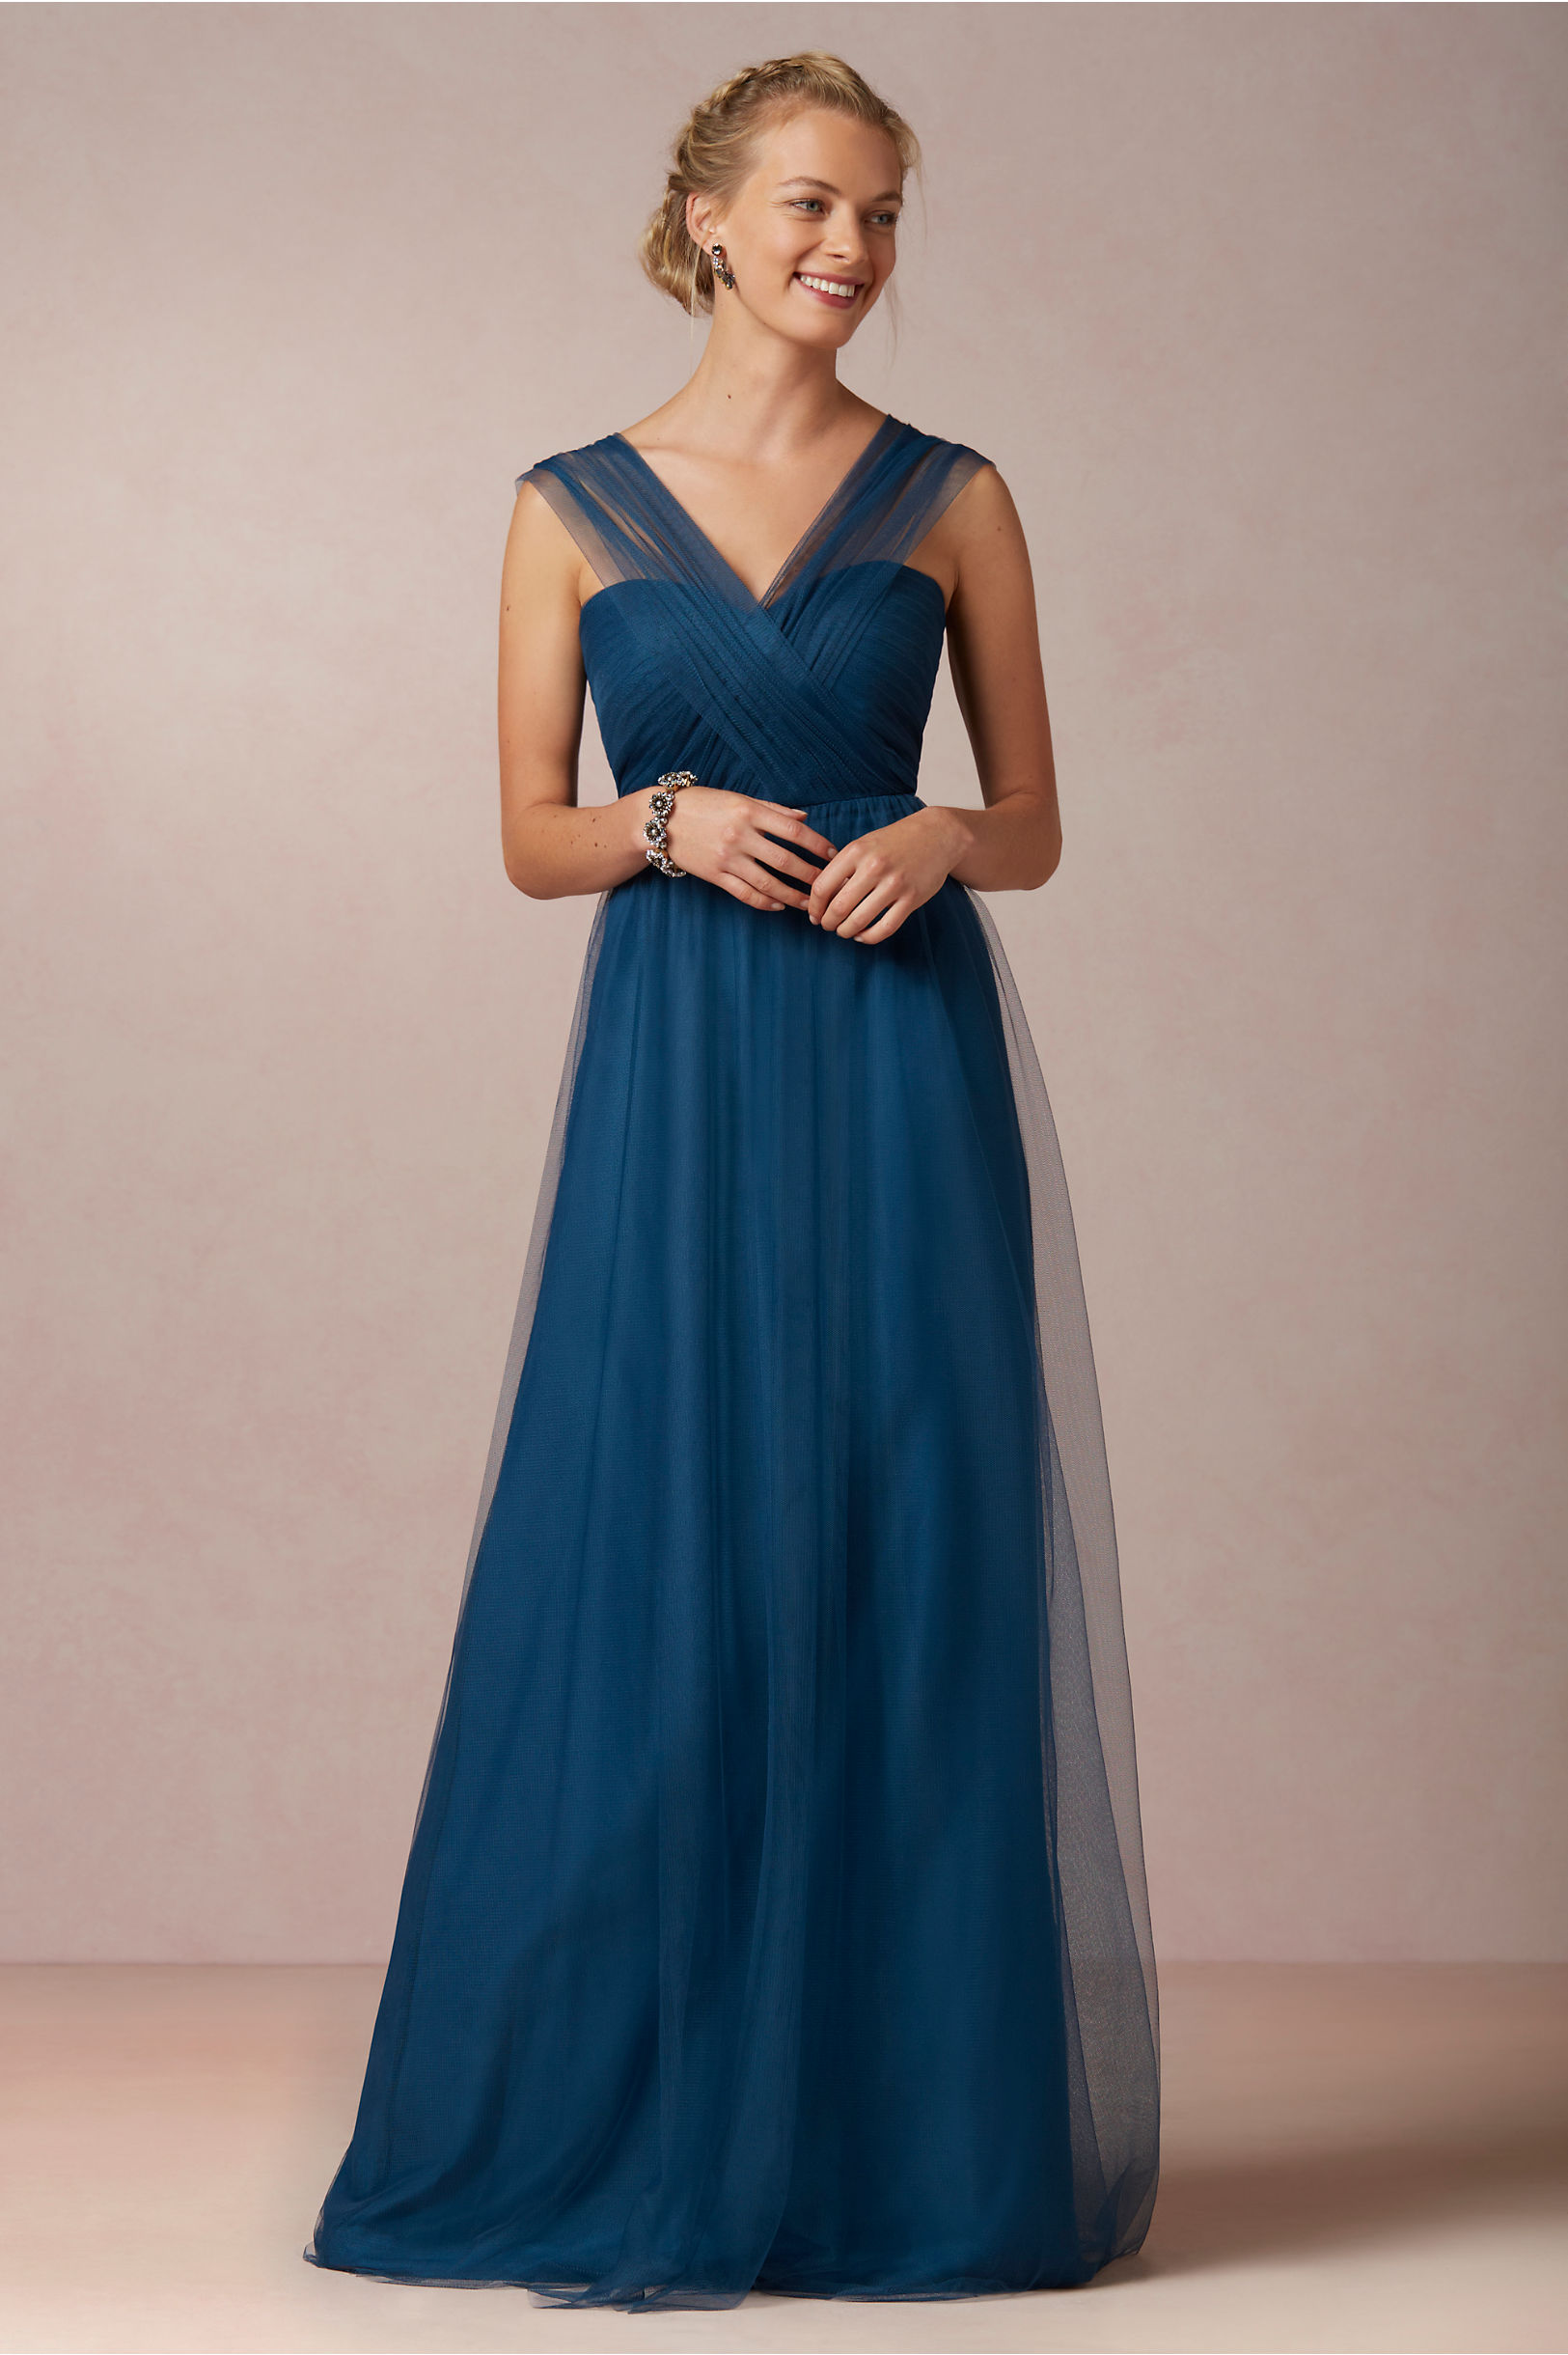 Annabelle dress in occasion dresses bhldn jenny yoo lapis blue annabelle dress bhldn ombrellifo Image collections